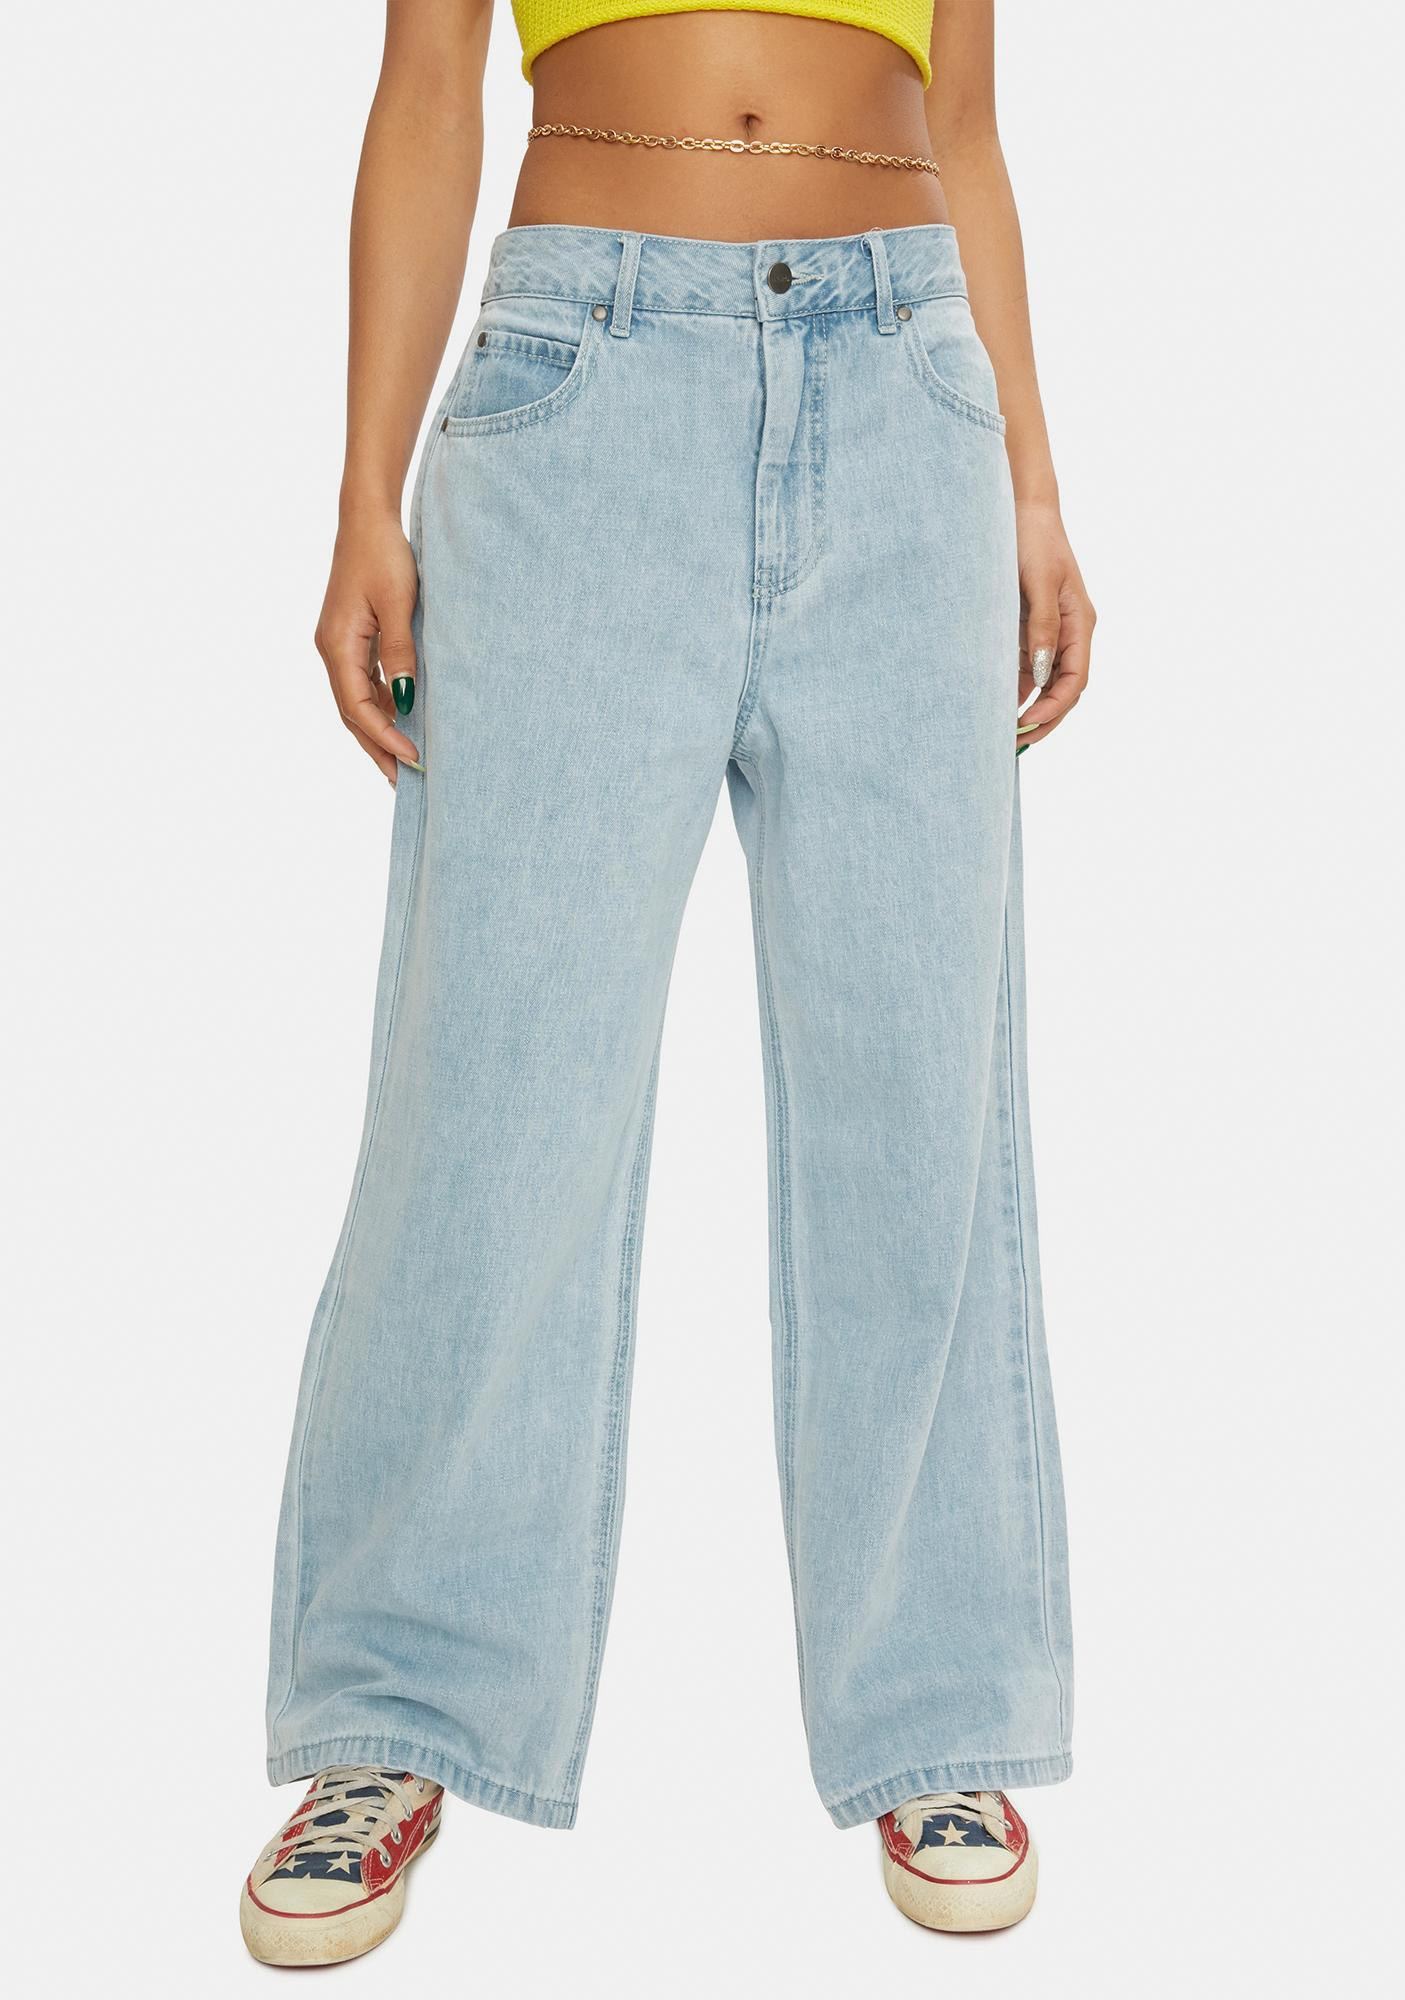 Afends Kendall Hemp Denim Jeans